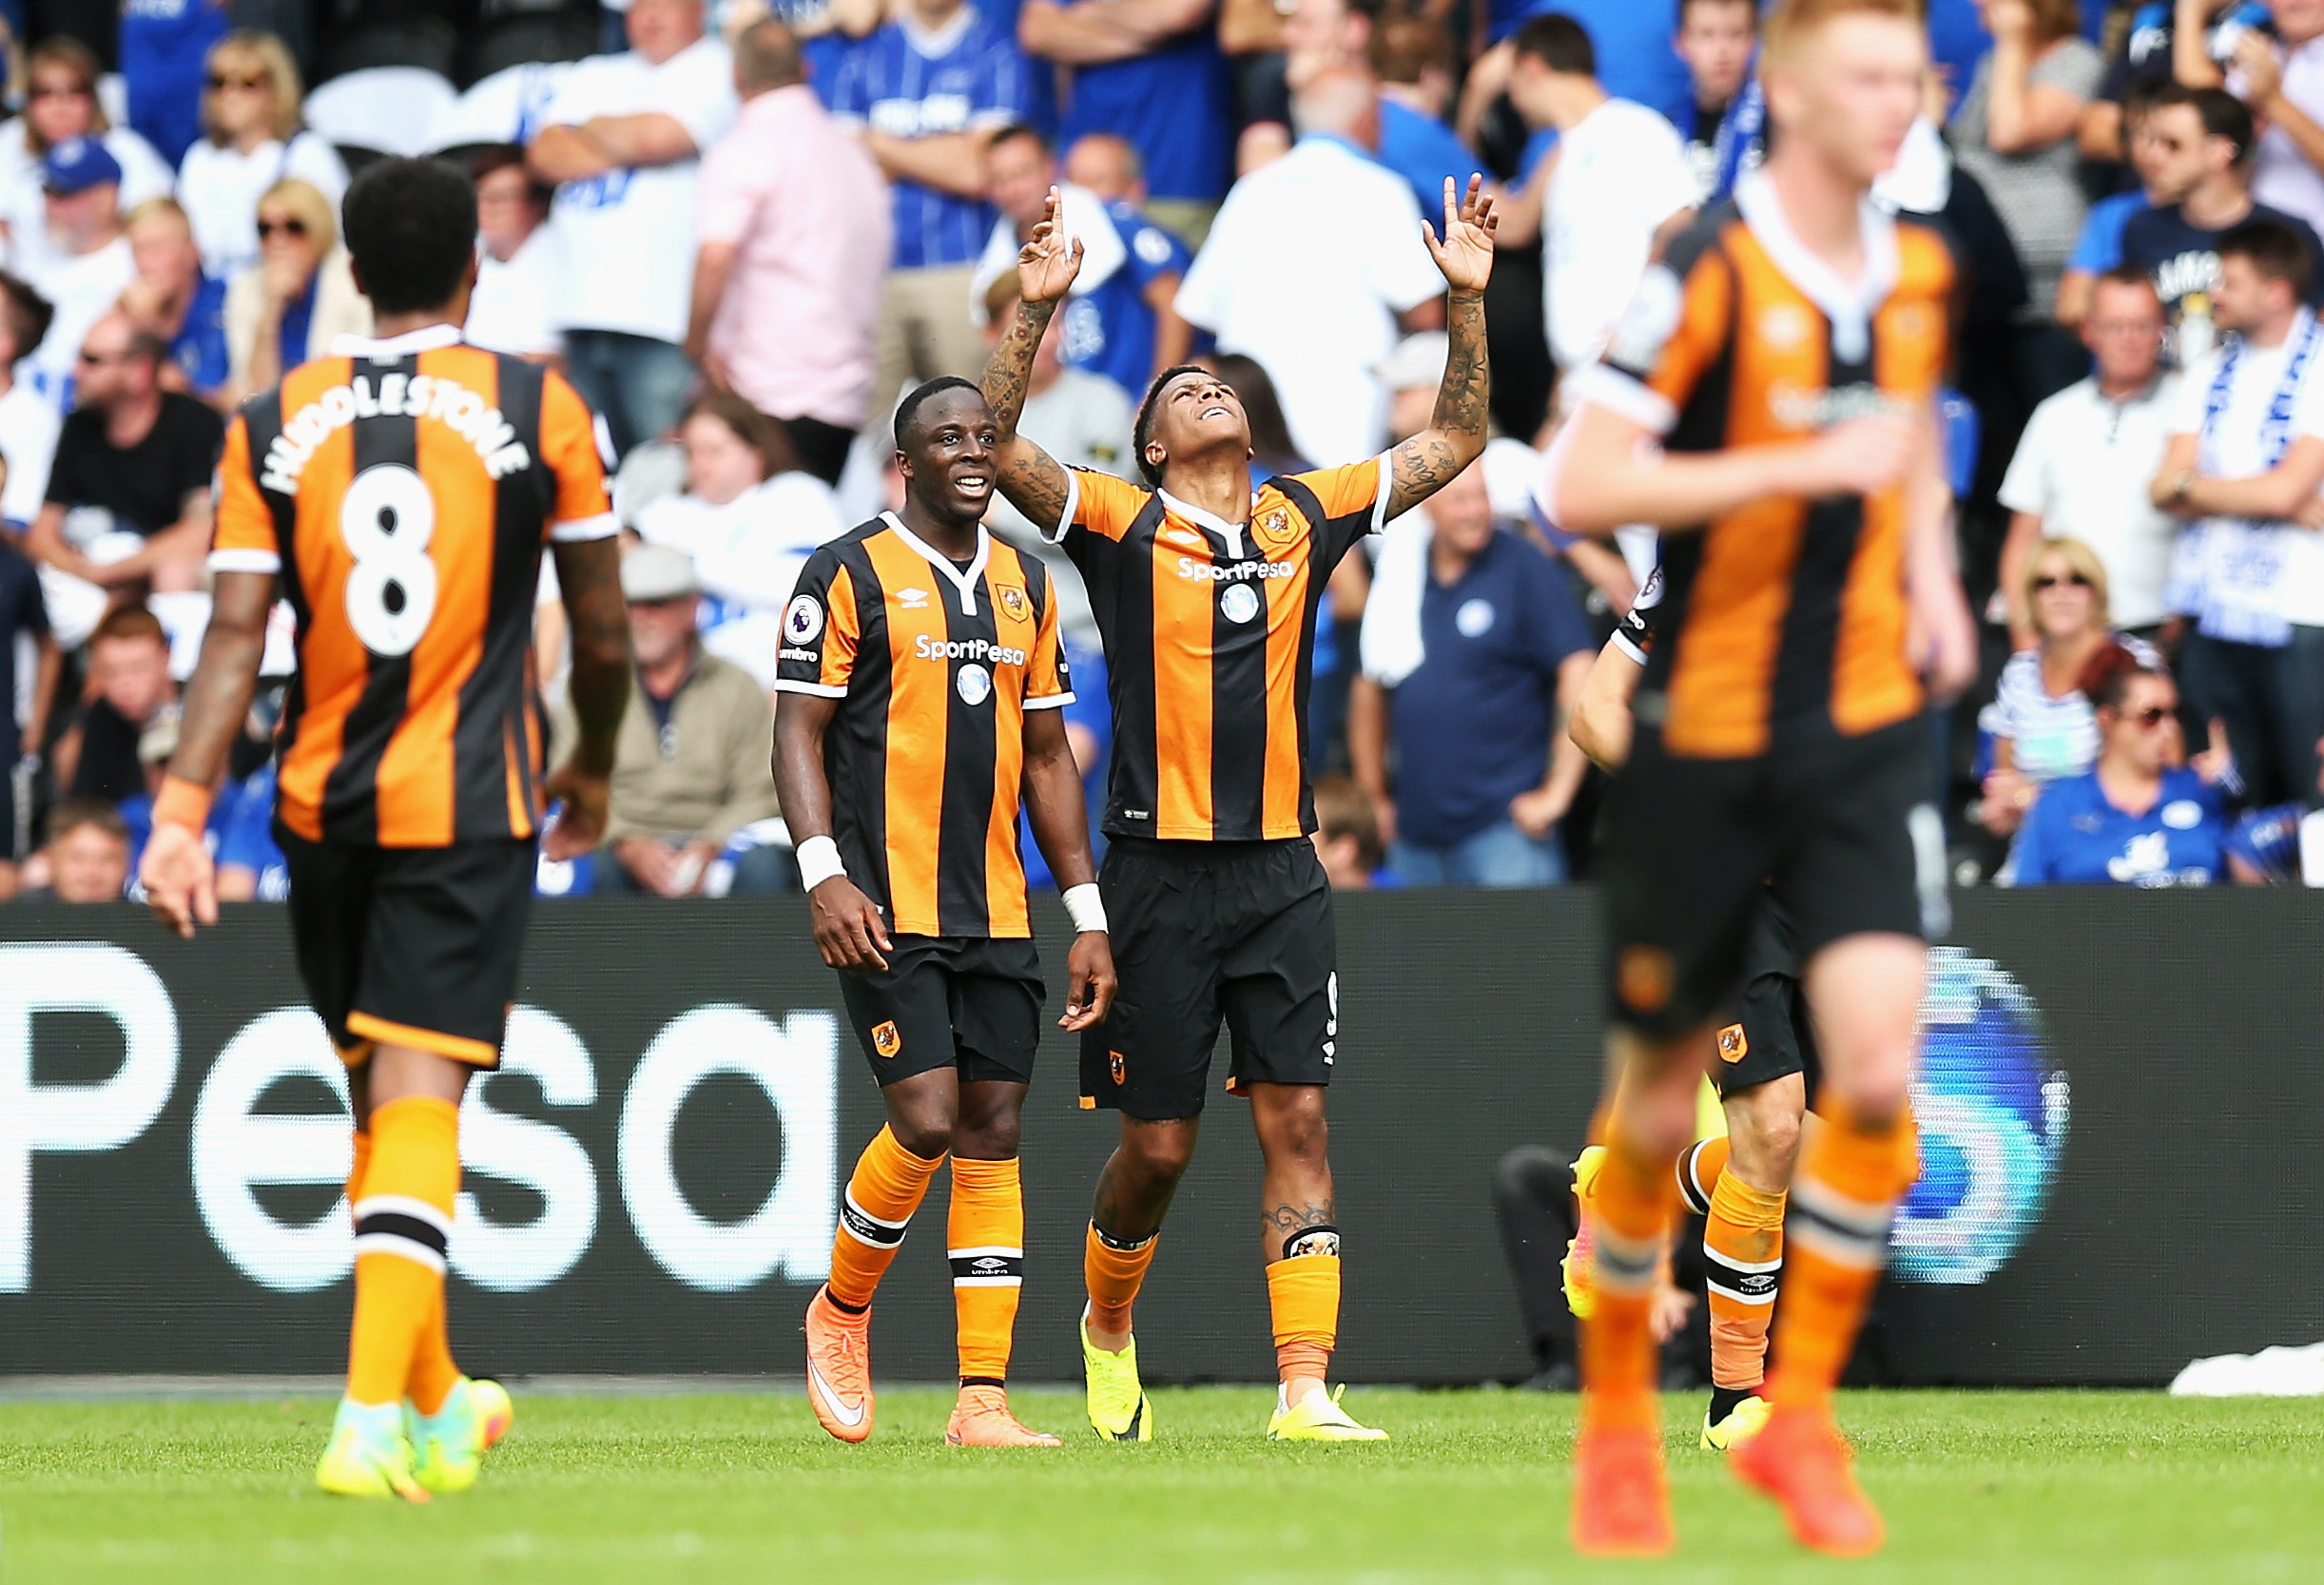 hull city first team